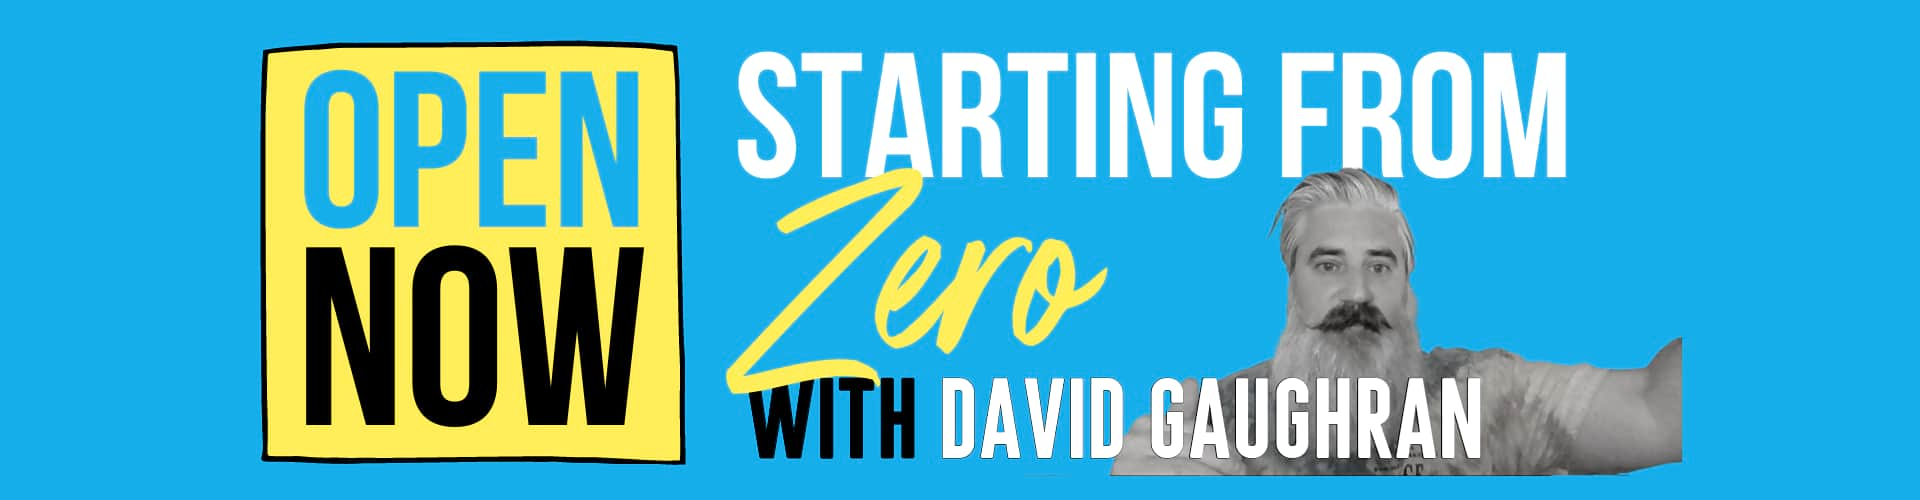 Starting from Zero David Gaughran free self-publishing course